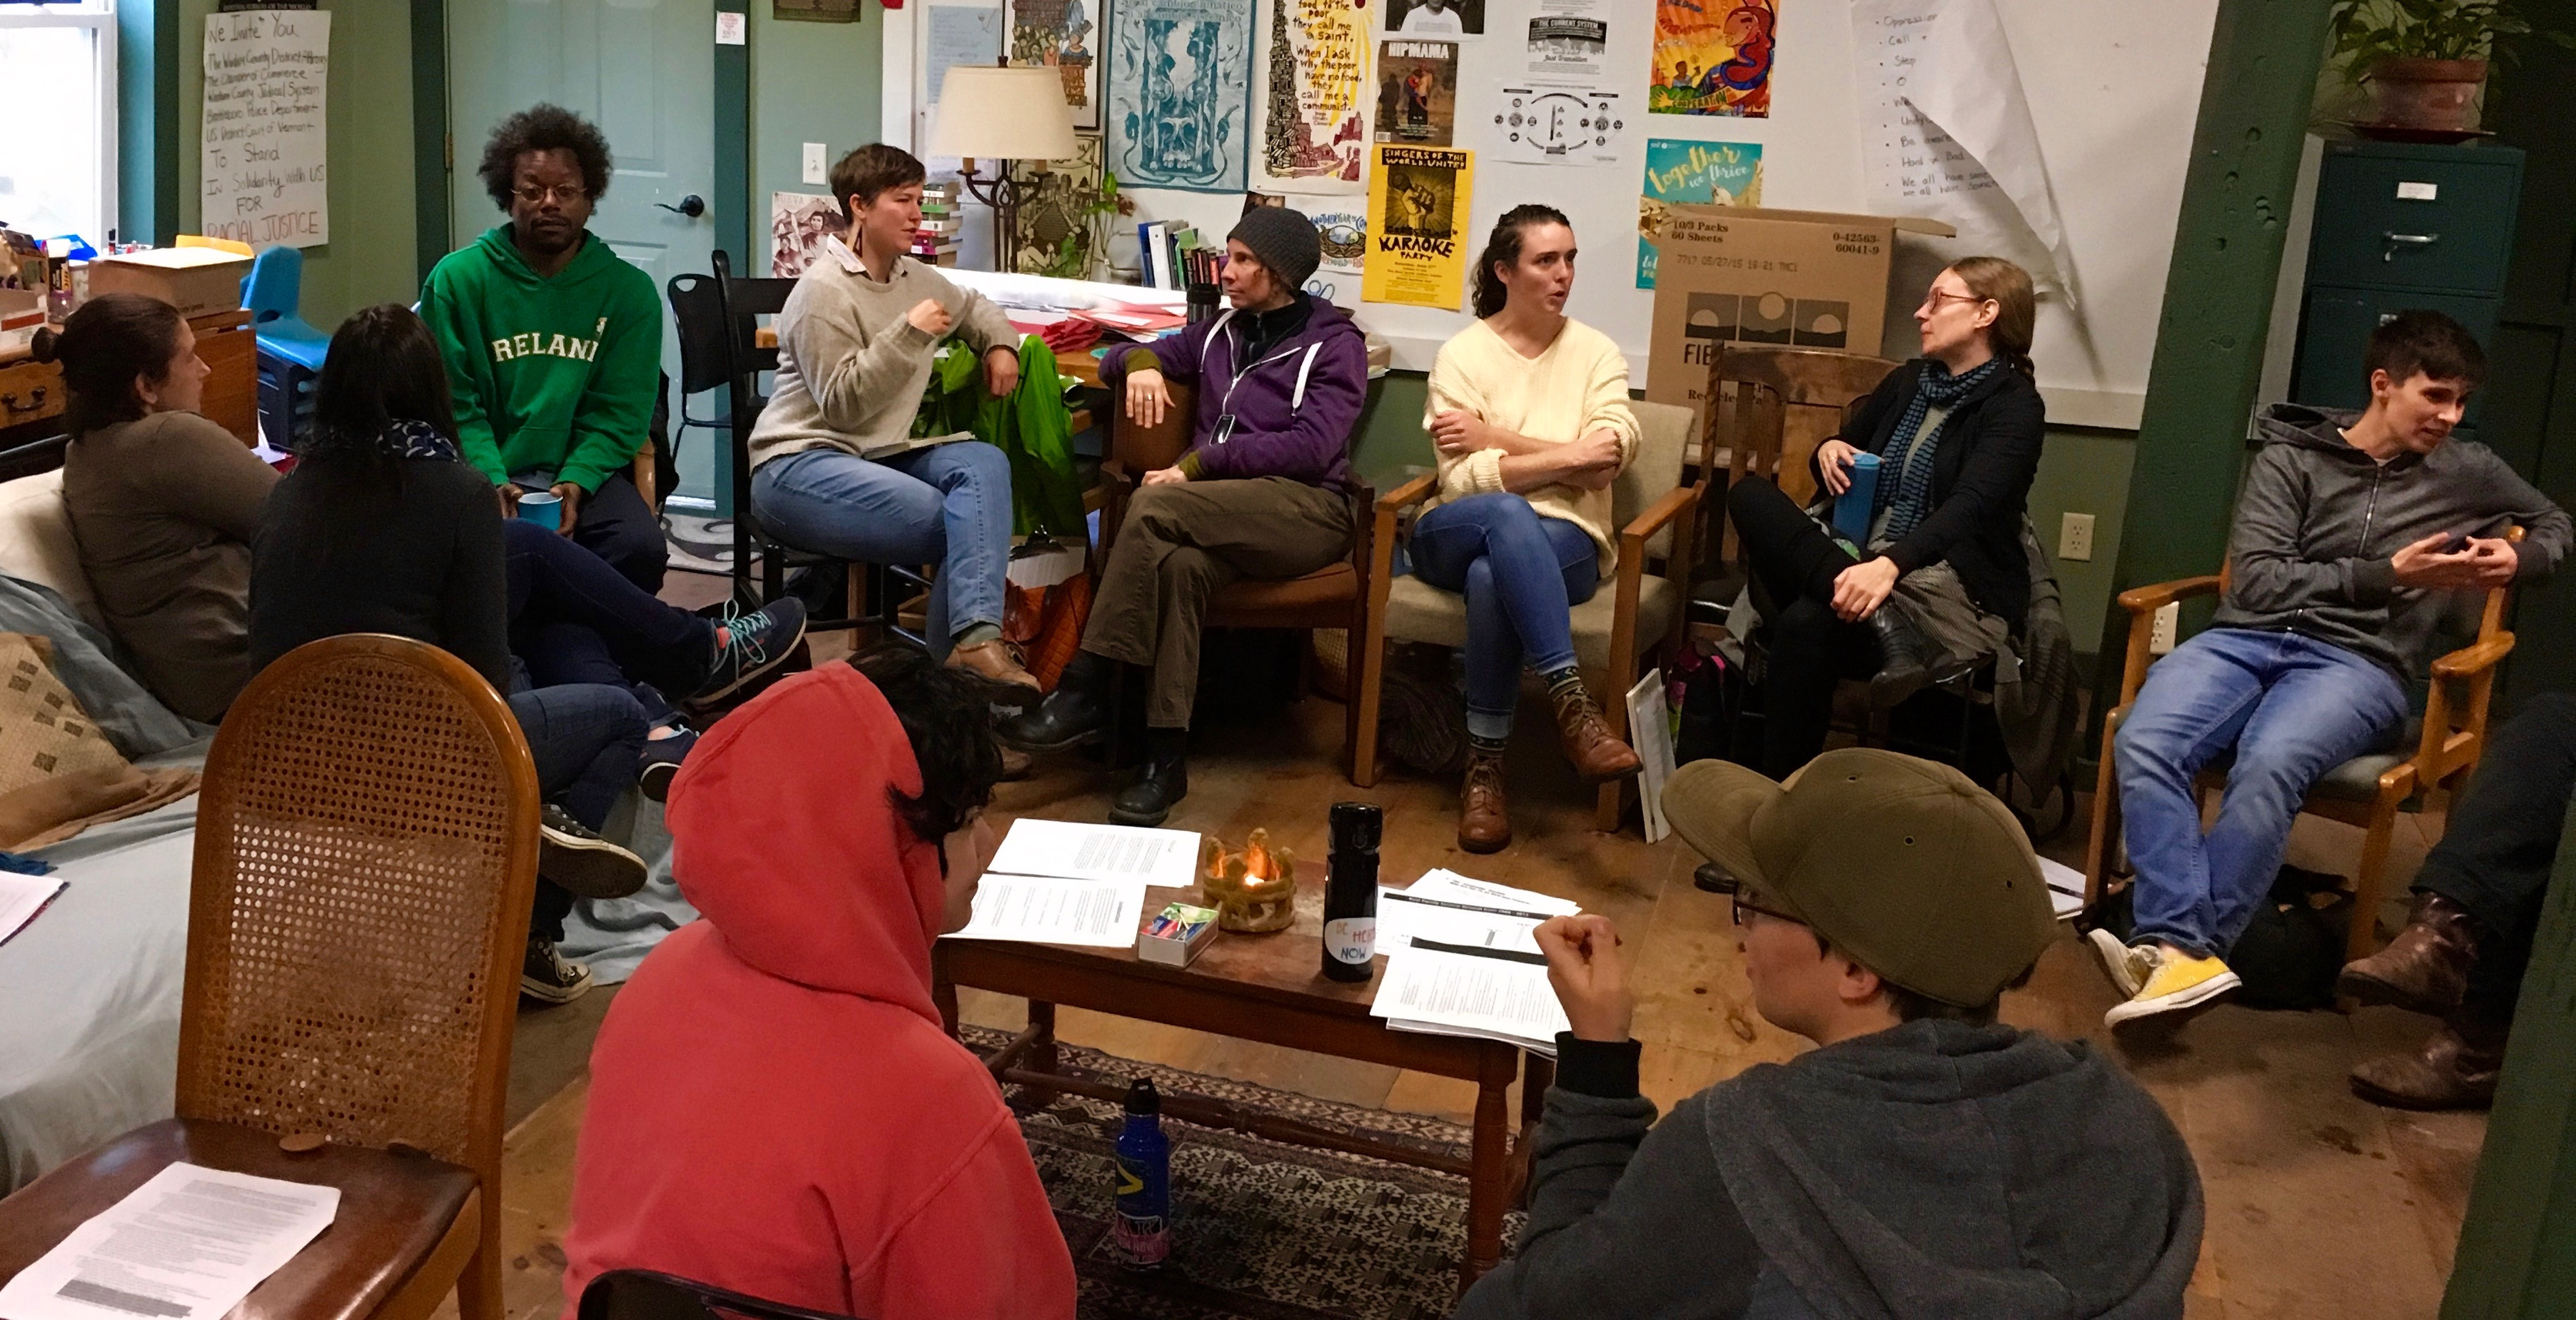 The photo below shows participants in the Fall 2016 circle, discussing class experiences in pairs